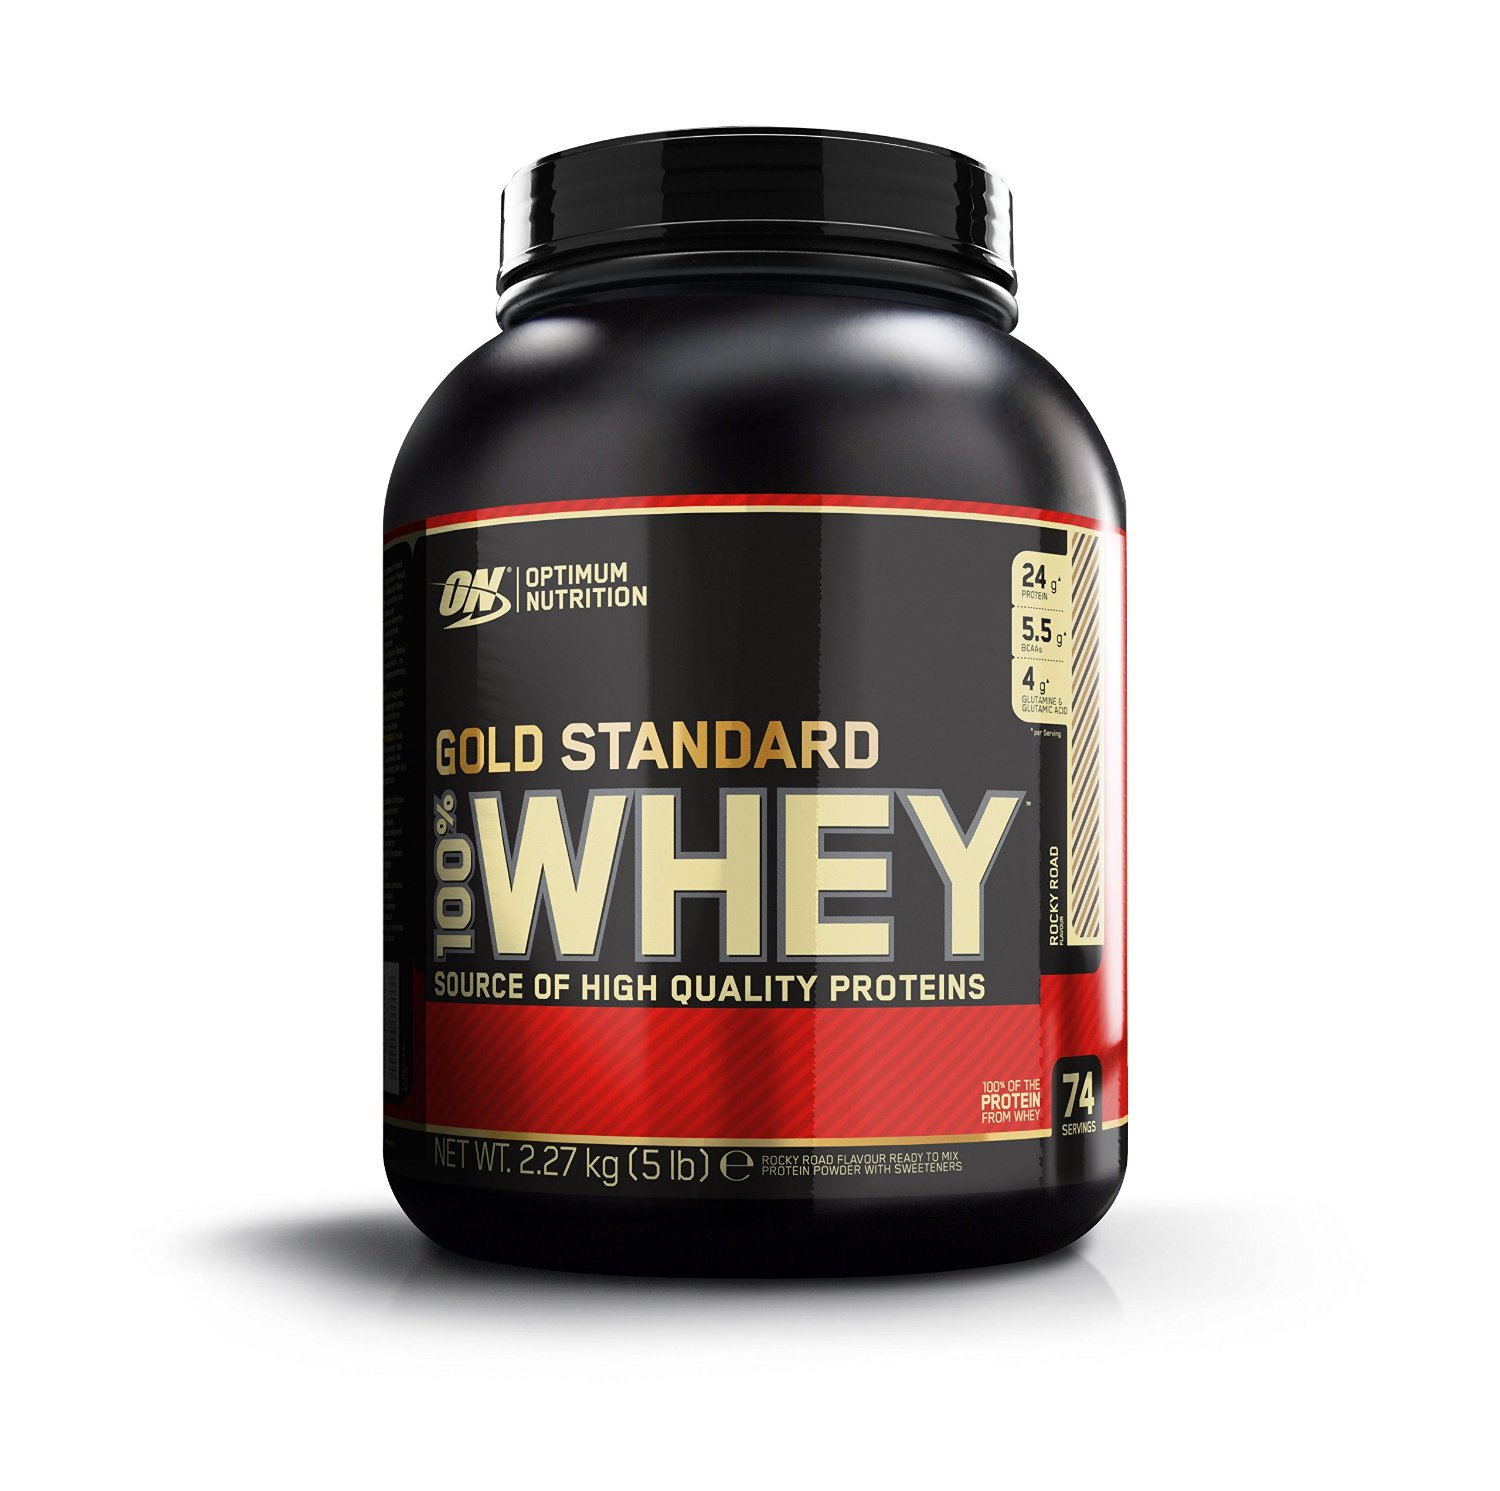 ON (Optimum Nutrition) Gold Standard 100% Whey Protein, 5 lb